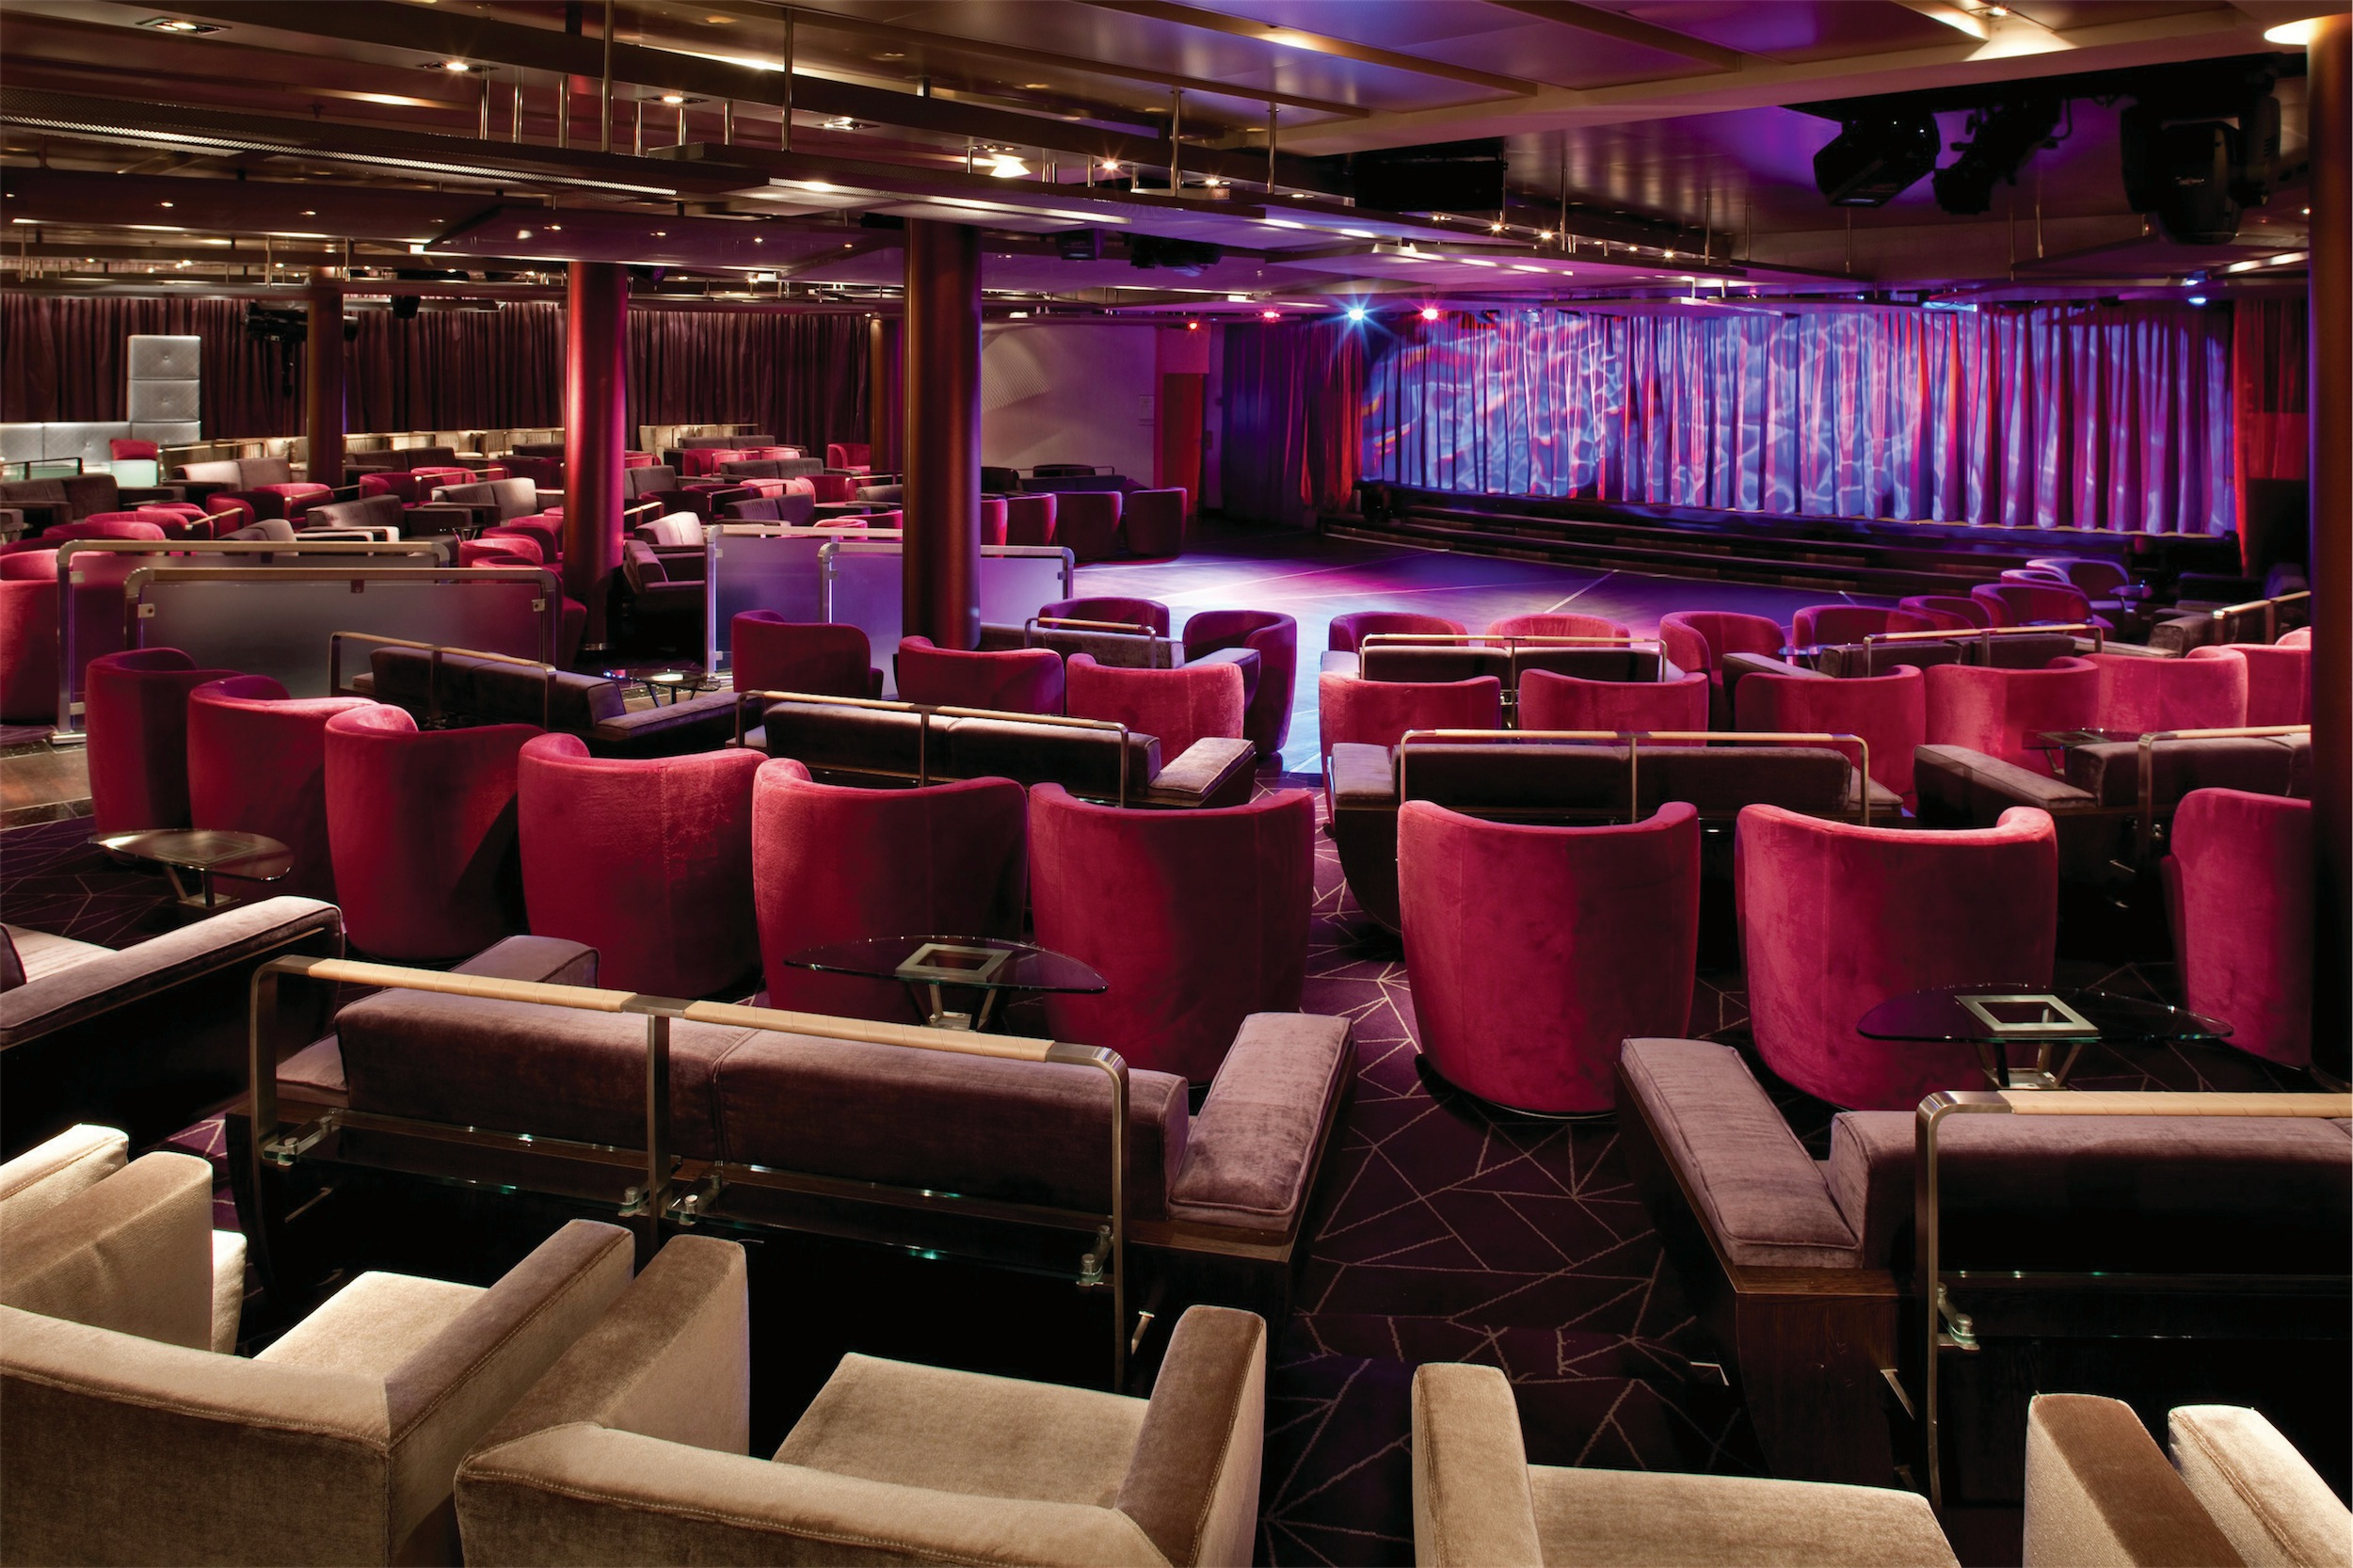 Seabourn Odyssey Class Interior Grand Salon 2.jpg